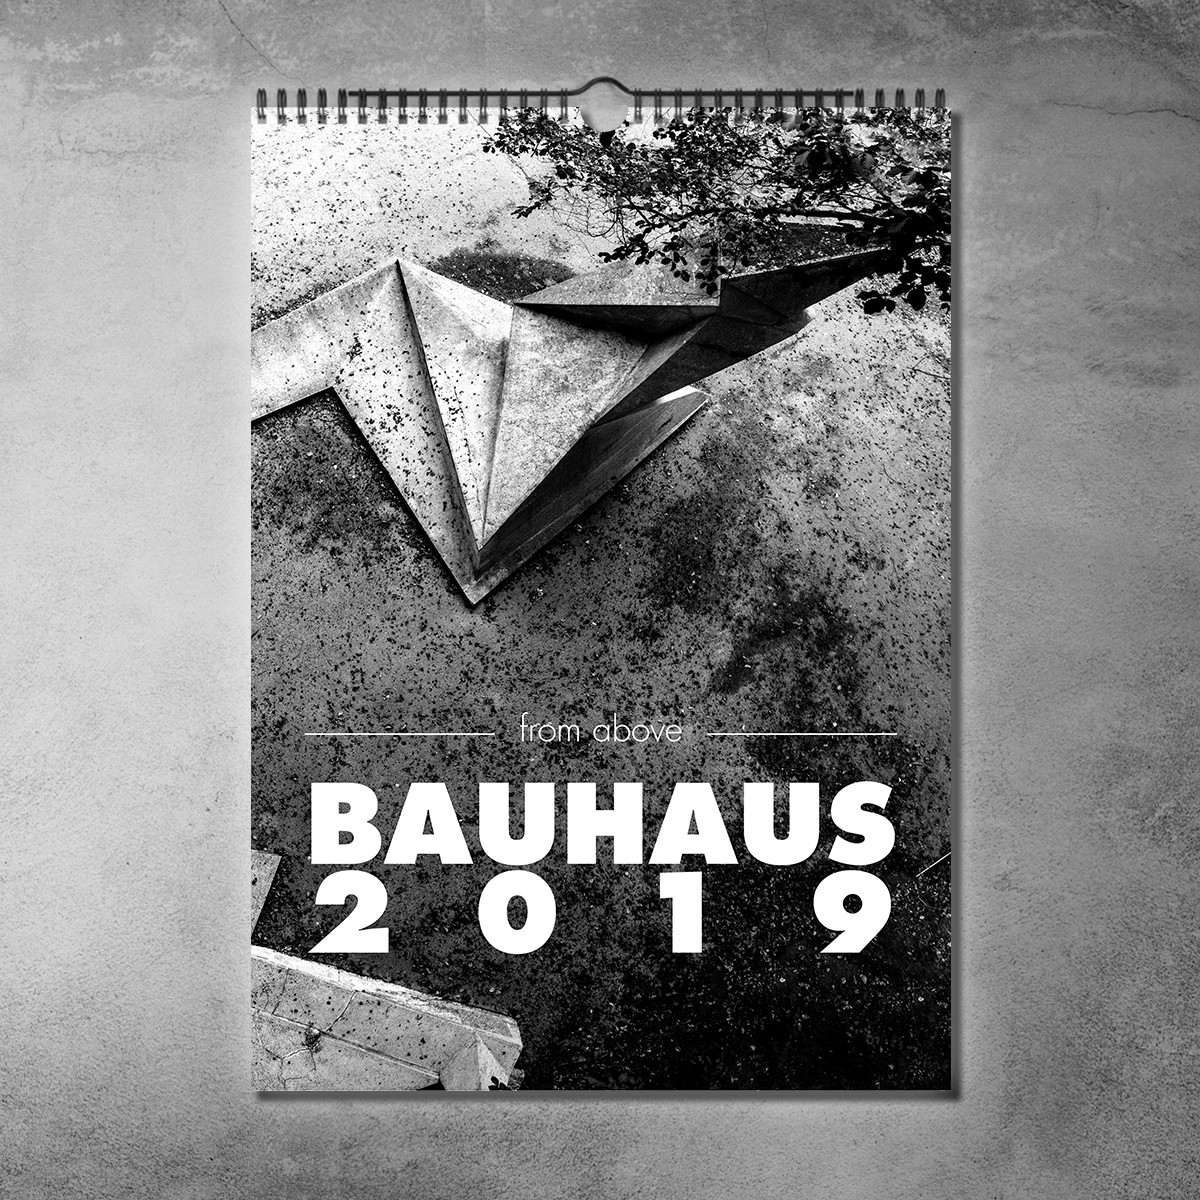 from above - BAUHAUS 2019